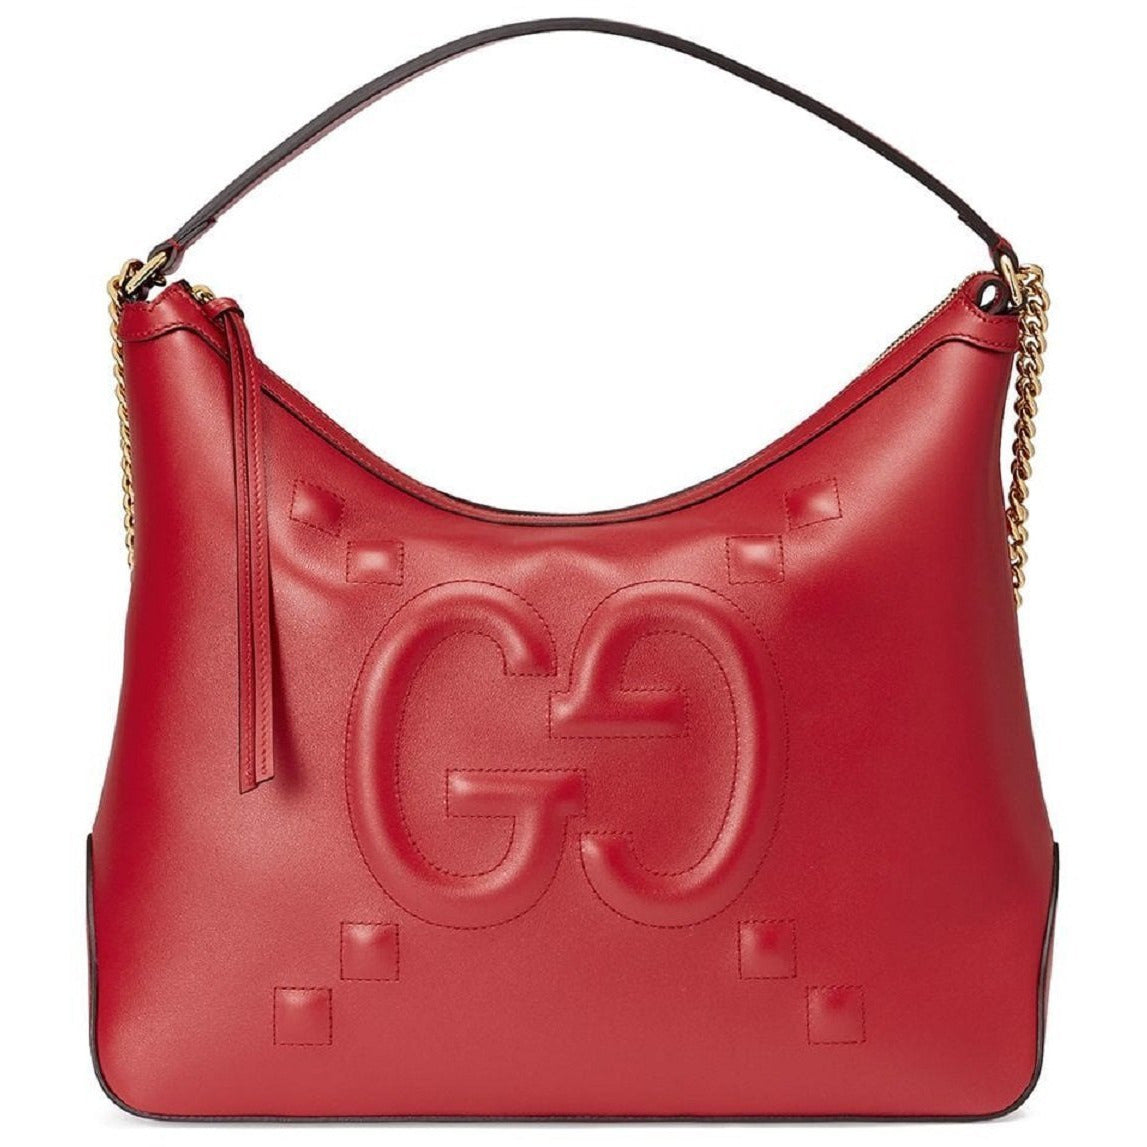 Gucci Red Leather Embossed Dadini Apollo Gold Chain Handbag 474988